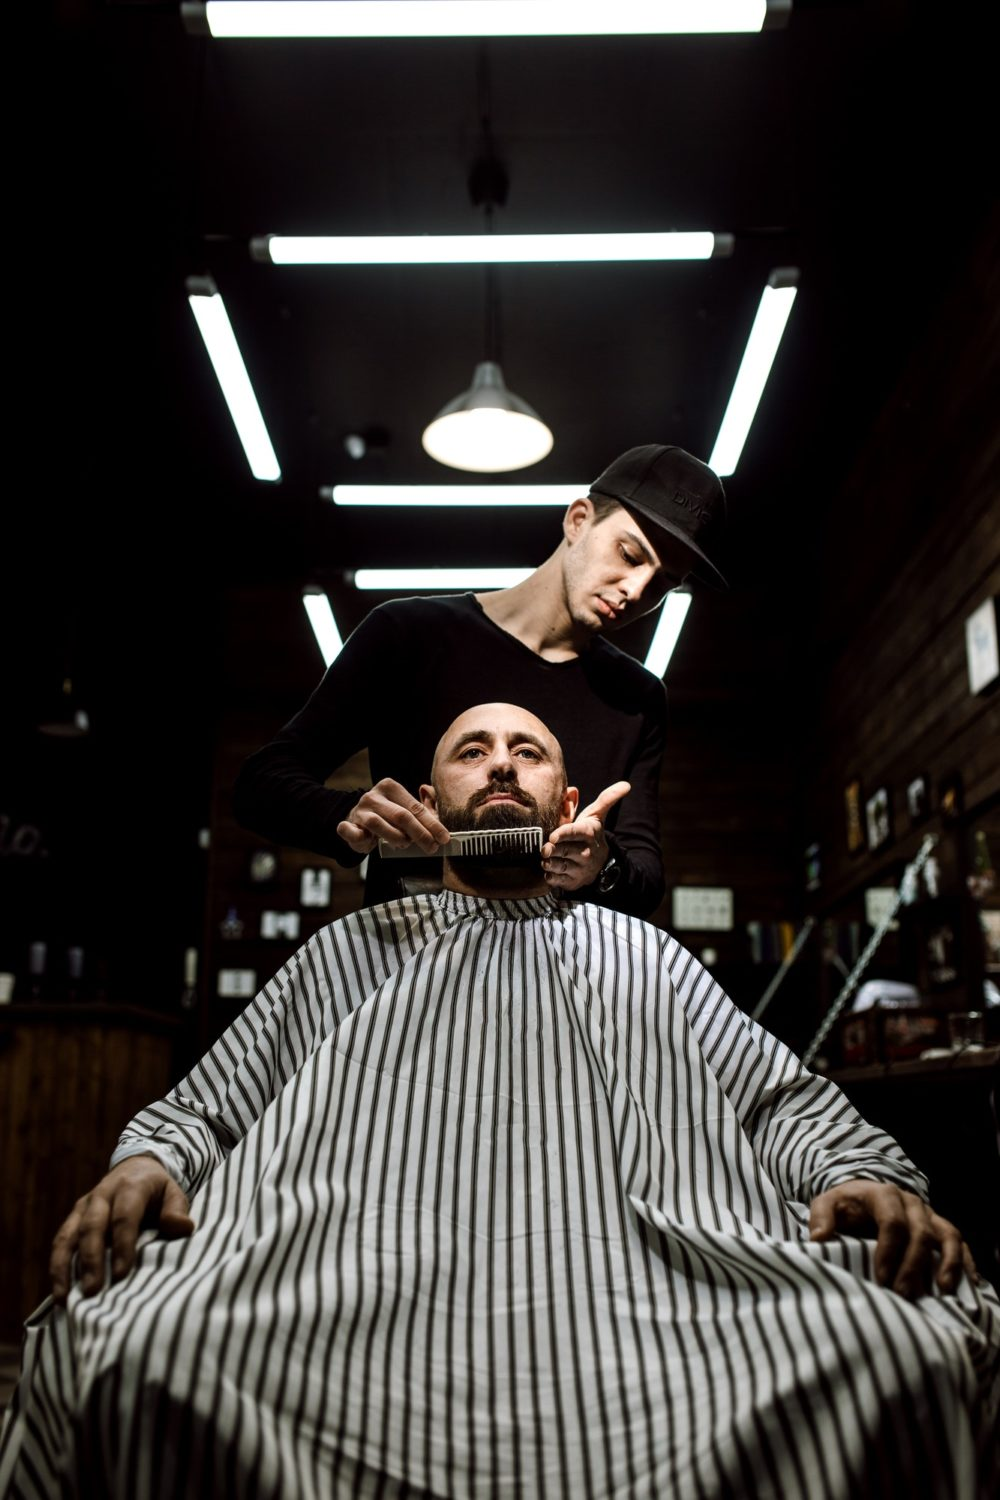 The stylish barbershop. The fashion barber tidies up beard of brutal man sitting in the armchair